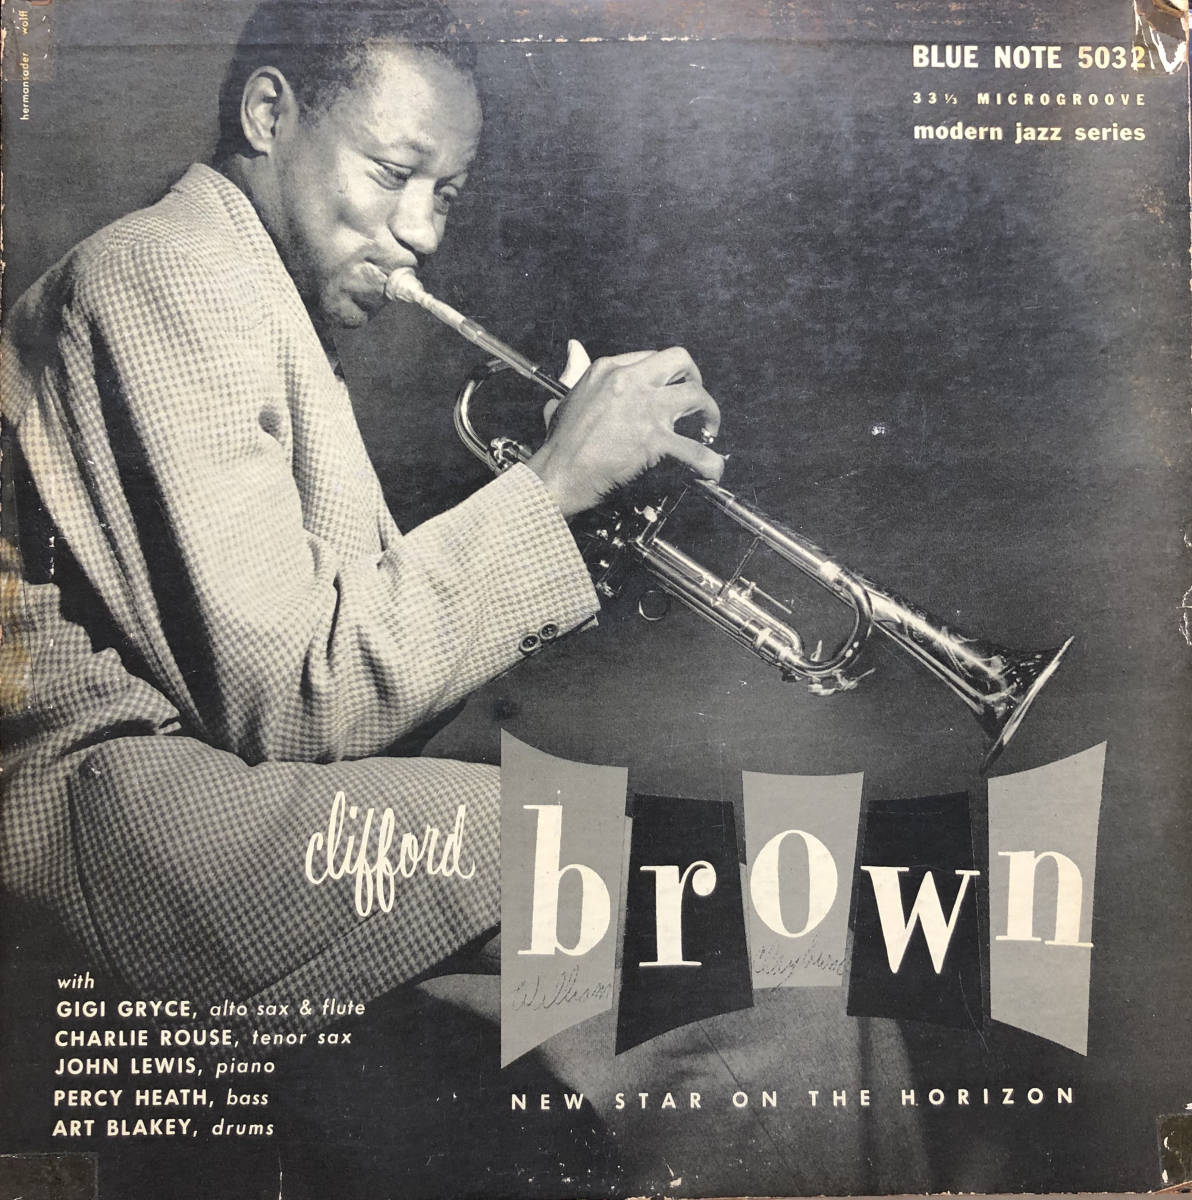 New Star On The Horizon / Clifford Brown / Blue Note 5032 / 10inch LP_画像1